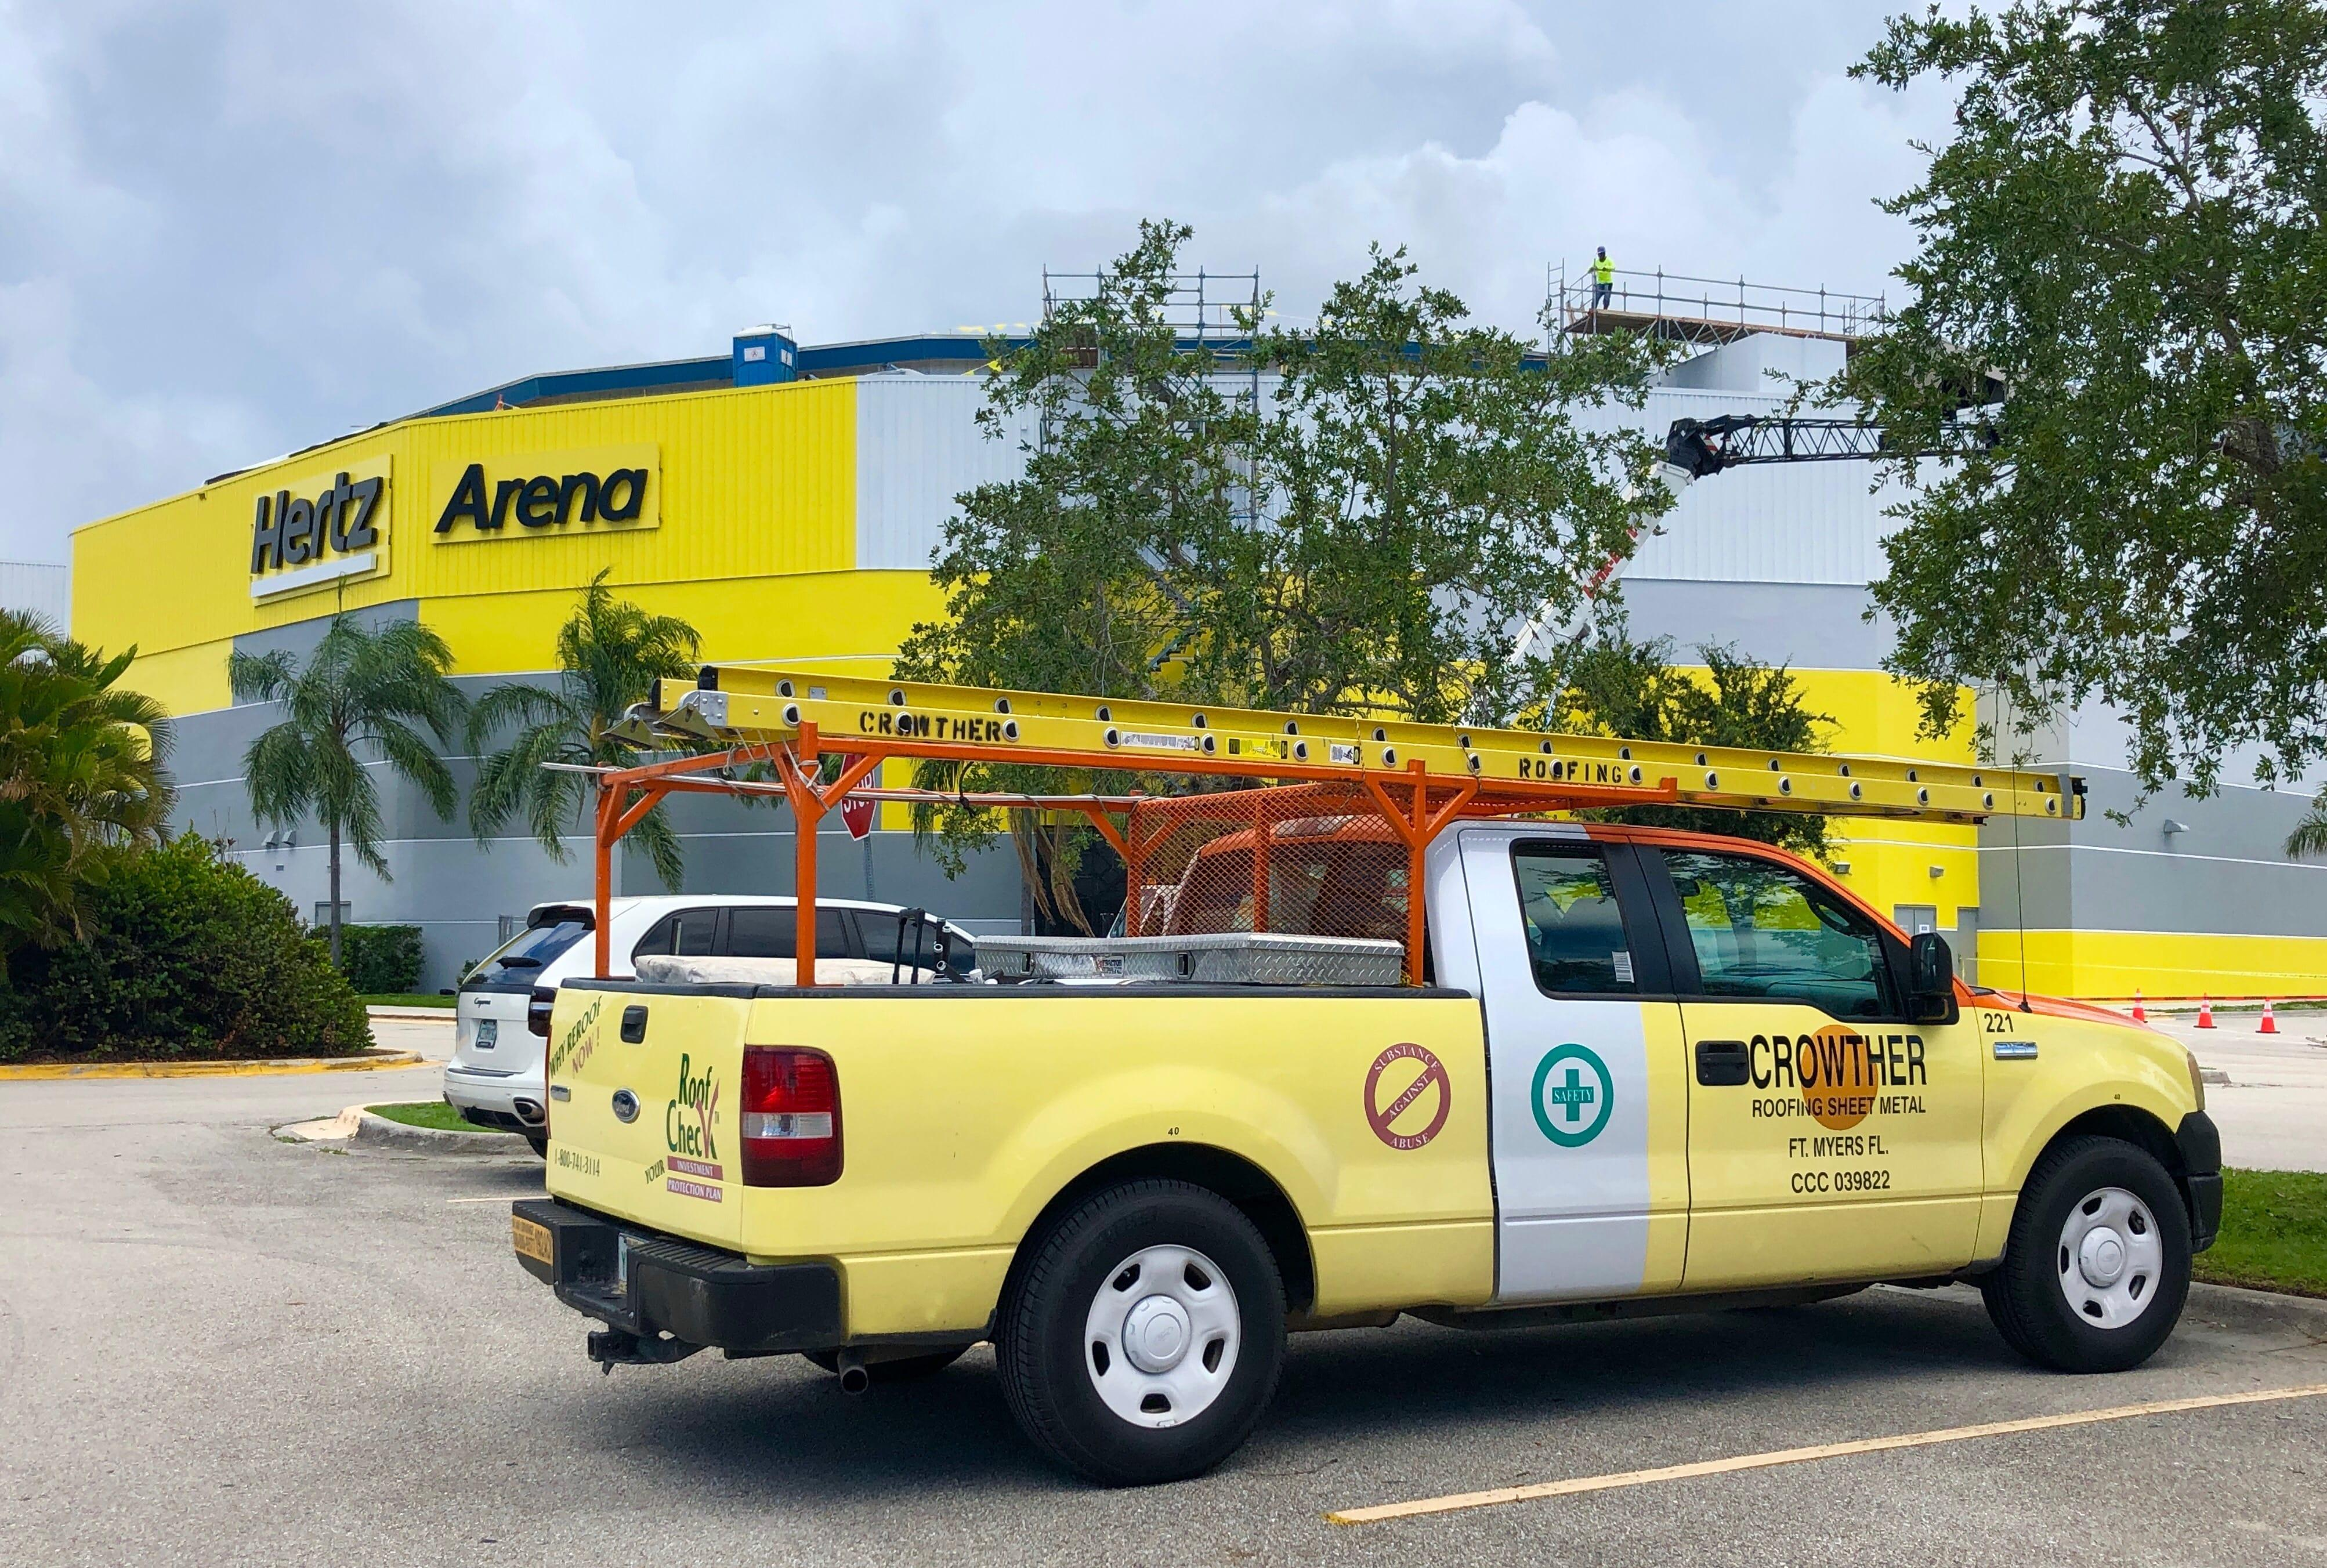 Crowther Roofing servicing Hertz Arena